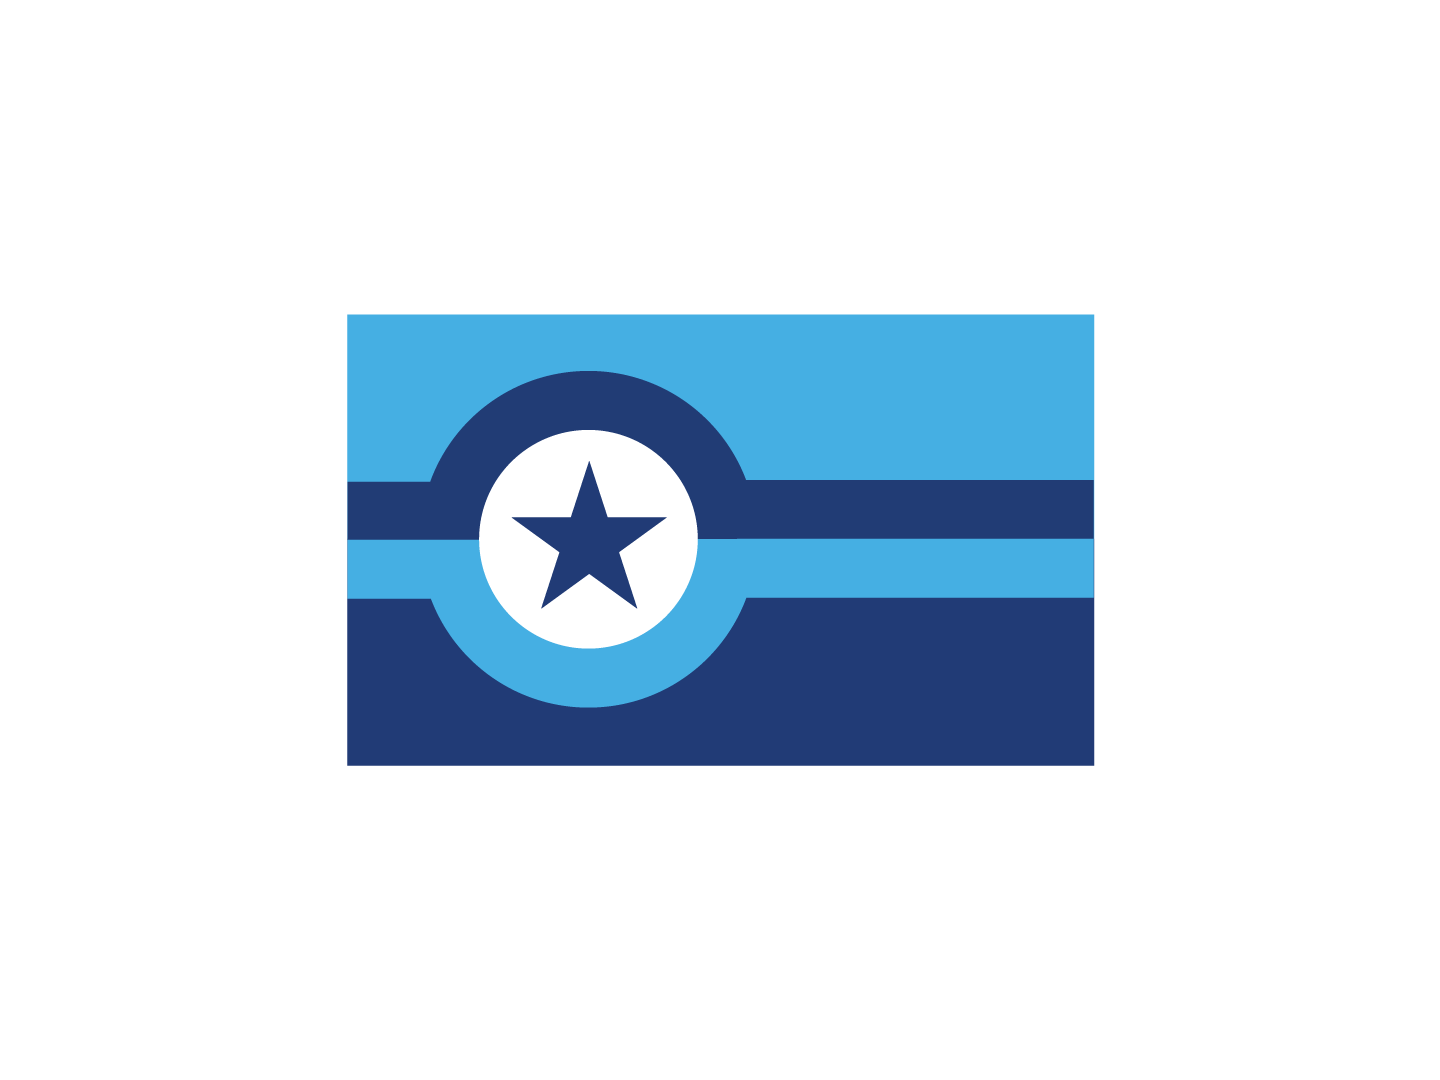 Olympia City Flag geometric emblem design graphic design state capital pacific northwest municipal vexillography vexillology flag design washington olympia